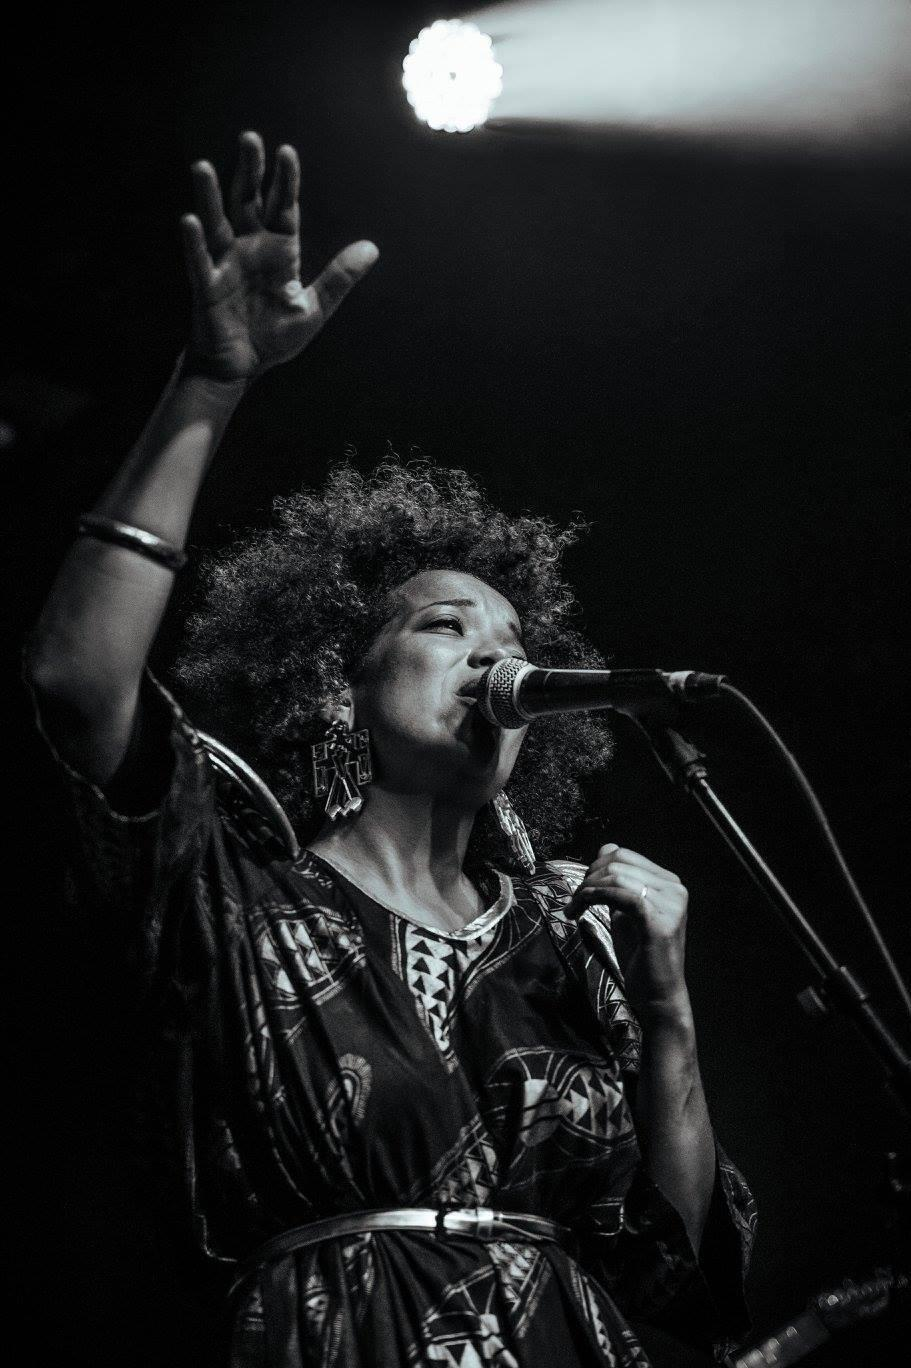 Bernard, who performs under the name Kate Priestley, onstage with her band KP and the Boom Boom in 2016. The pandemic has put the band's live performances on hold.